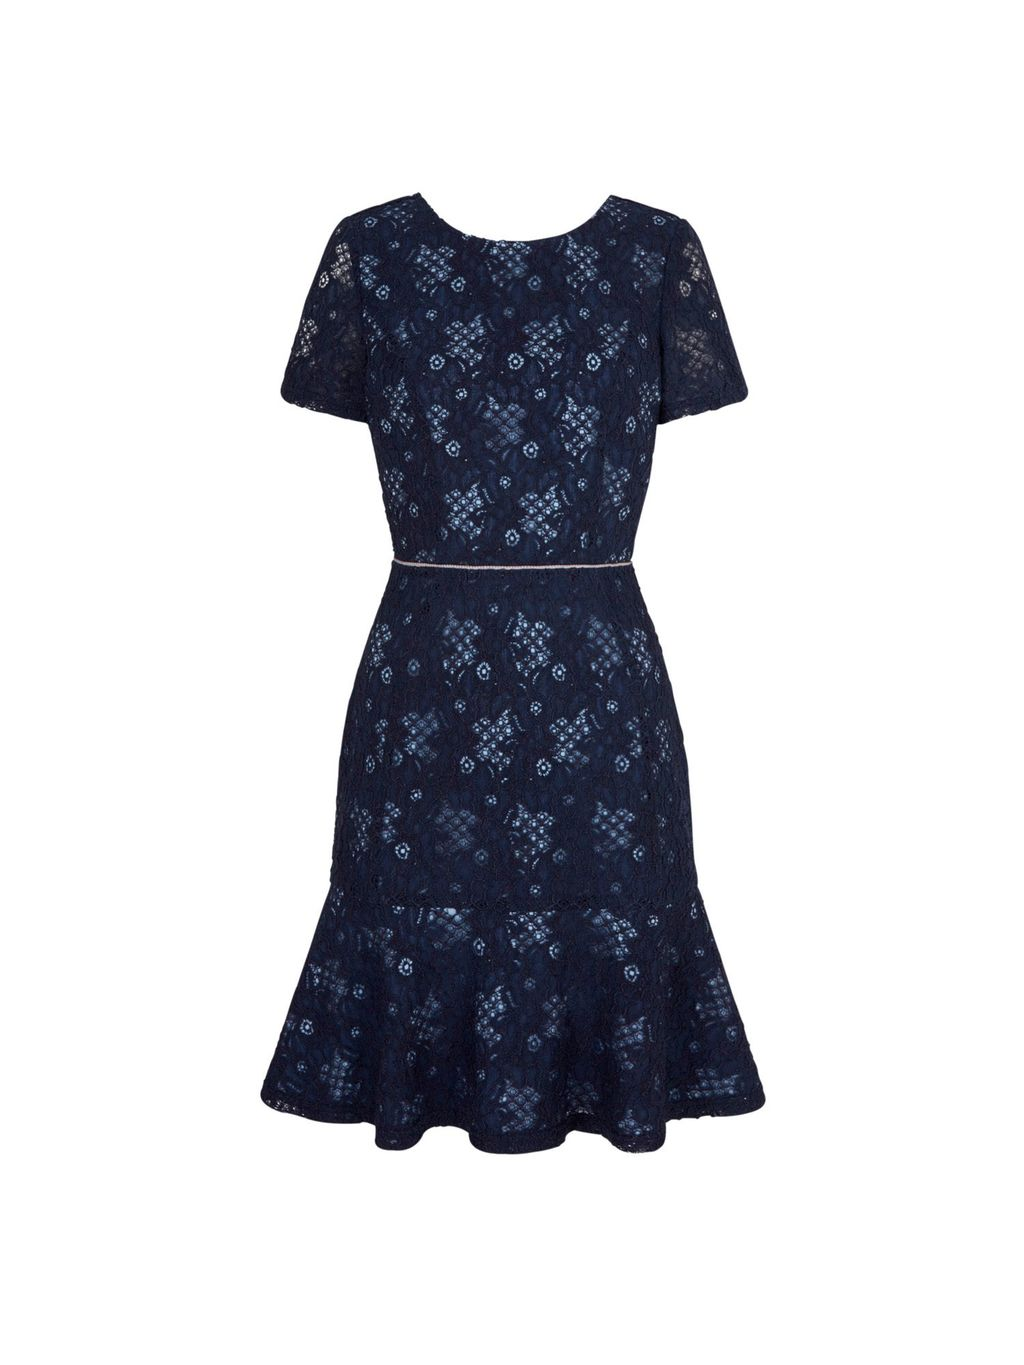 Lace Frill Party Dress, Navy - neckline: round neck; secondary colour: ivory/cream; predominant colour: navy; occasions: evening, occasion; length: just above the knee; fit: fitted at waist & bust; style: fit & flare; sleeve length: short sleeve; sleeve style: standard; texture group: lace; pattern type: fabric; pattern size: standard; pattern: patterned/print; fibres: viscose/rayon - mix; embellishment: lace; season: s/s 2016; wardrobe: event; embellishment location: pattern